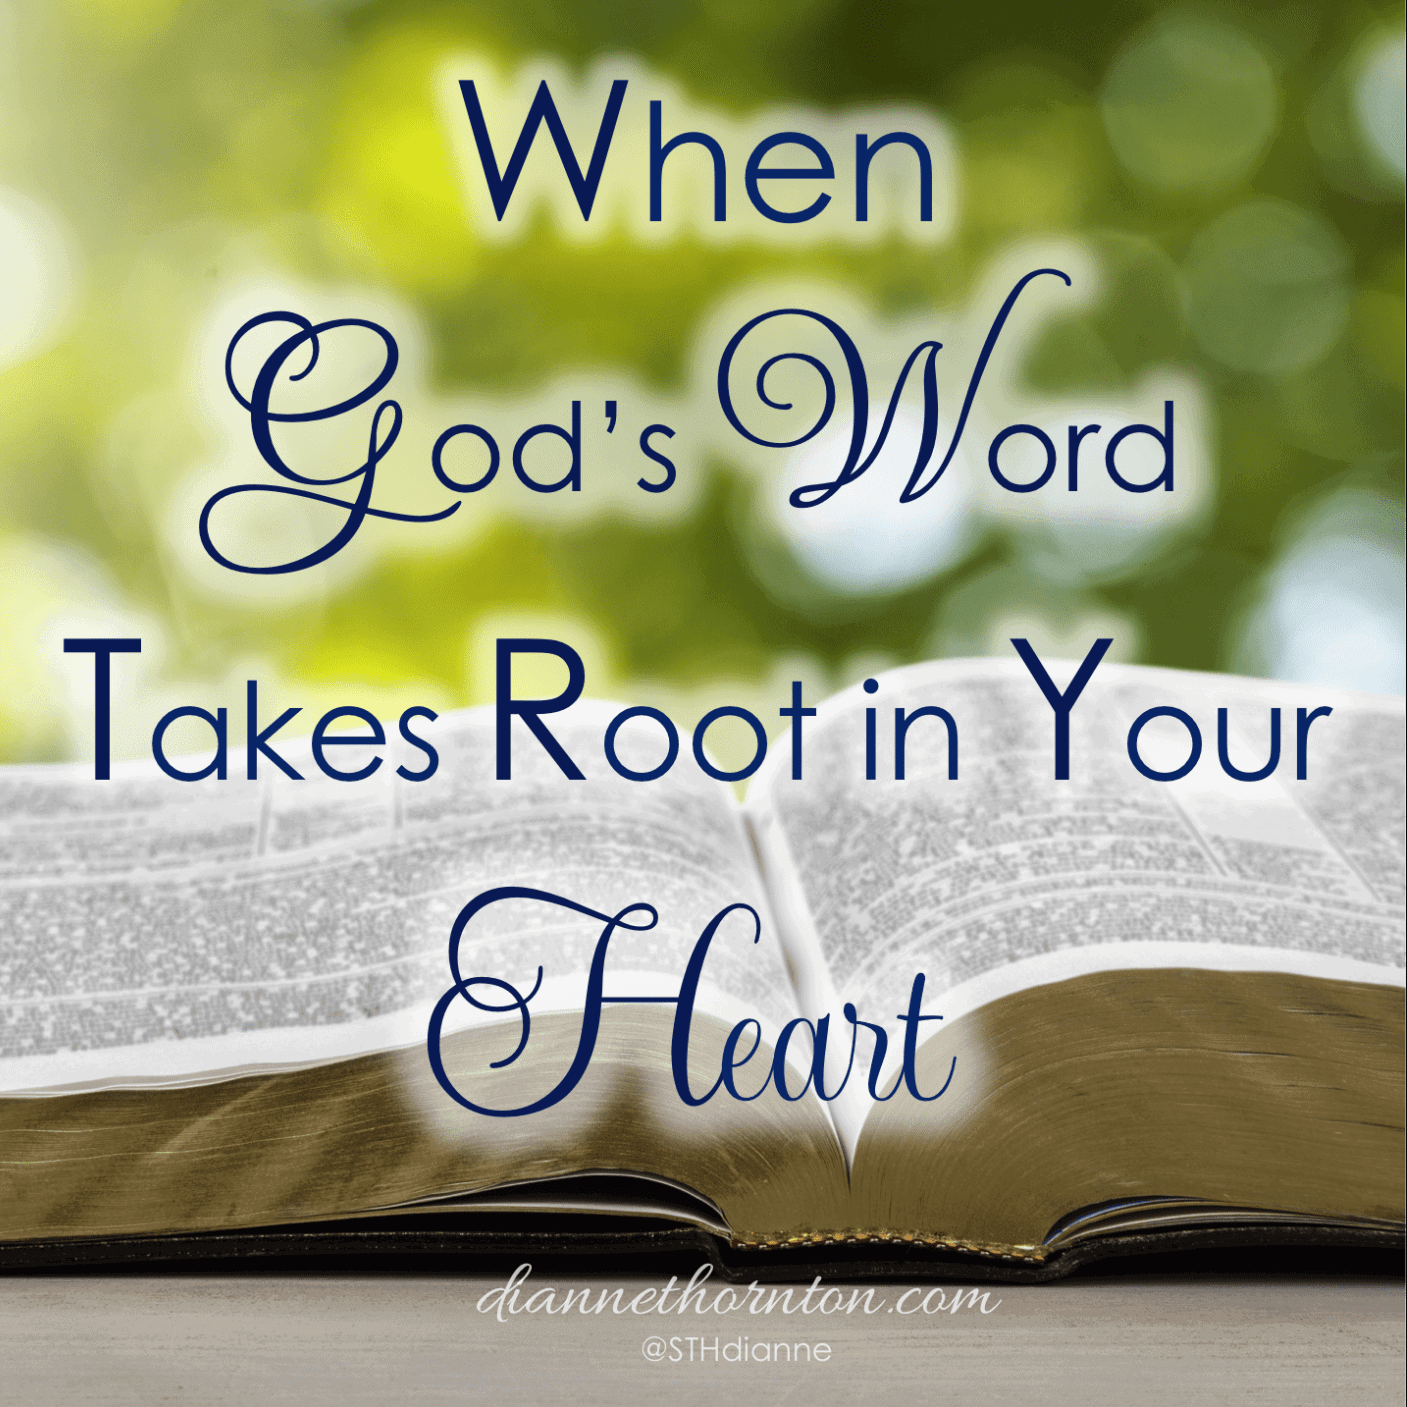 Do you have a favorite song or a treasured letter written by a loved one? This is treasure that takes root in your heart, and you will always remember it. When God's Word takes root in your heart, it becomes power to overcome sin.